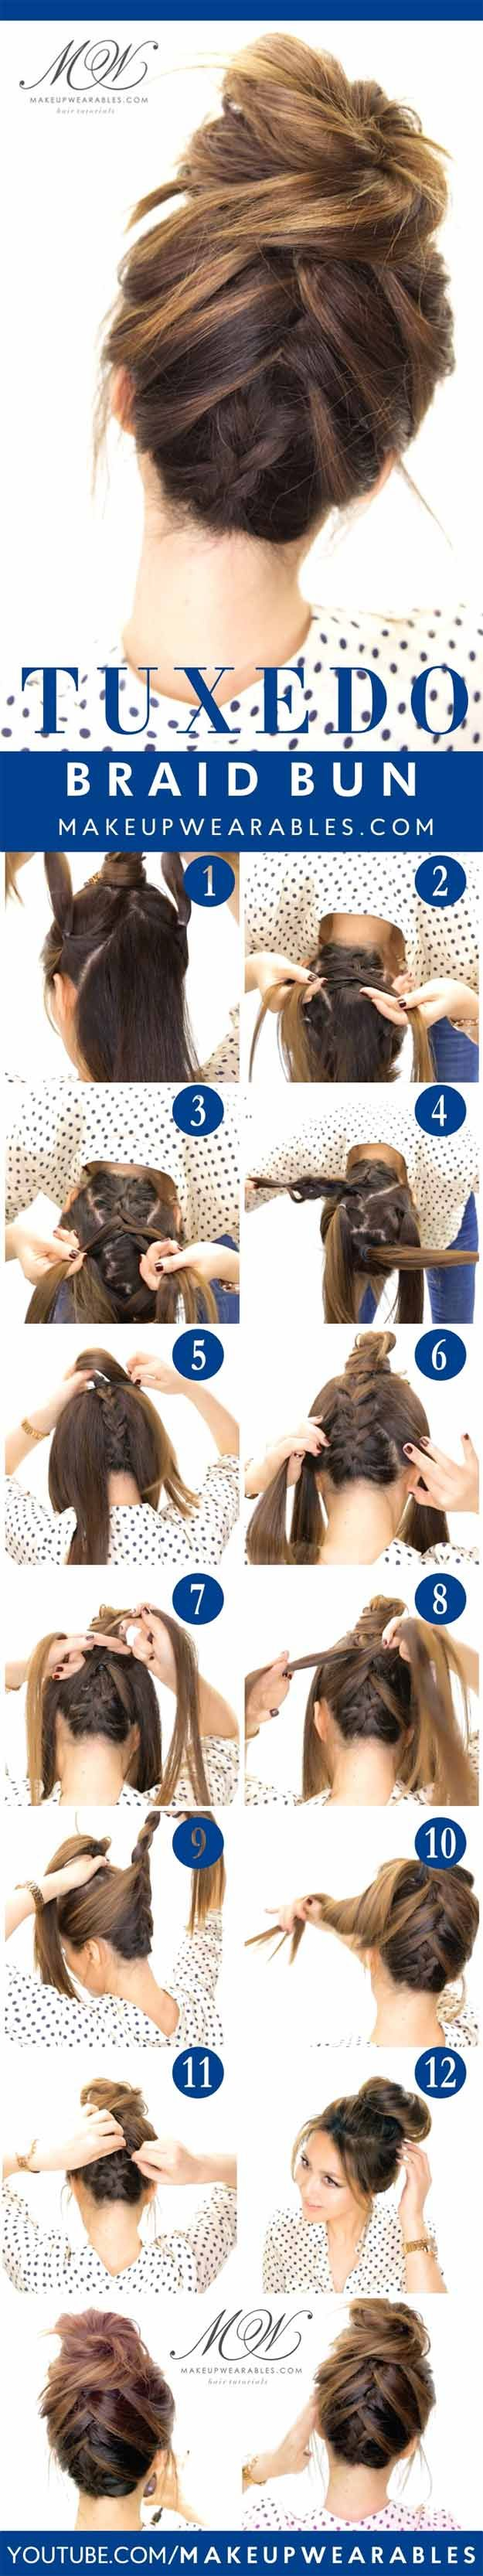 Best Hairstyles For Your 20s -Amazing Tuxedo Braid Messy Bun- Hair Dos And Don'ts For Your 20s, With The Best Haircuts For Women In Their 20s, Including Short Hairstyle Ideas, Flattering Haircuts For Medium Length Hair, And Tips And Tricks For Taming Long